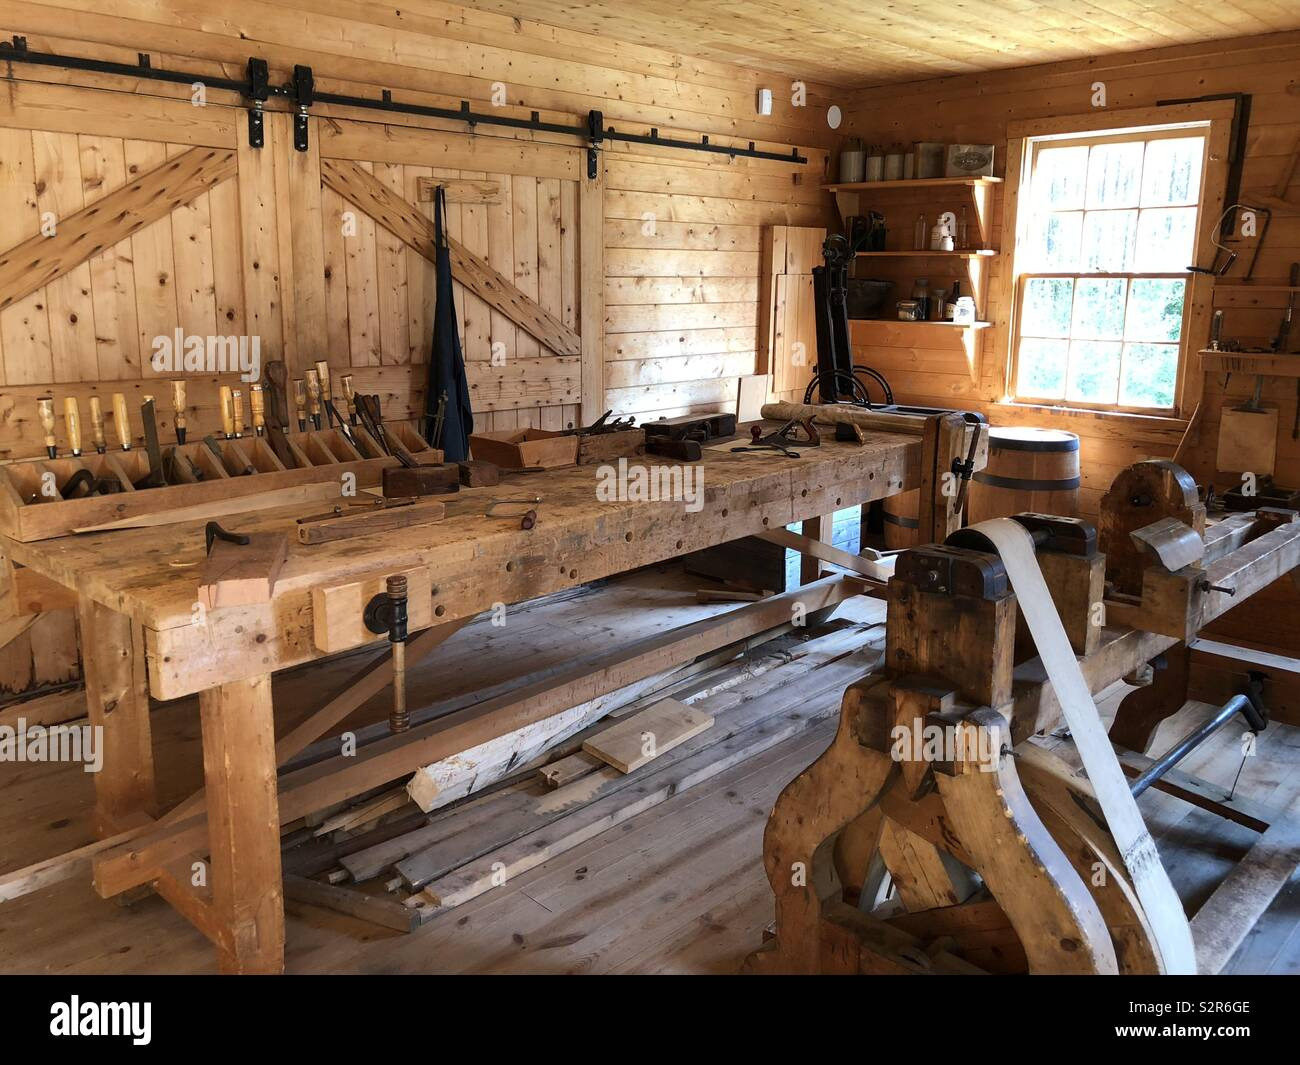 Historical Woodworking Shop Display At Fort Edmonton Park In